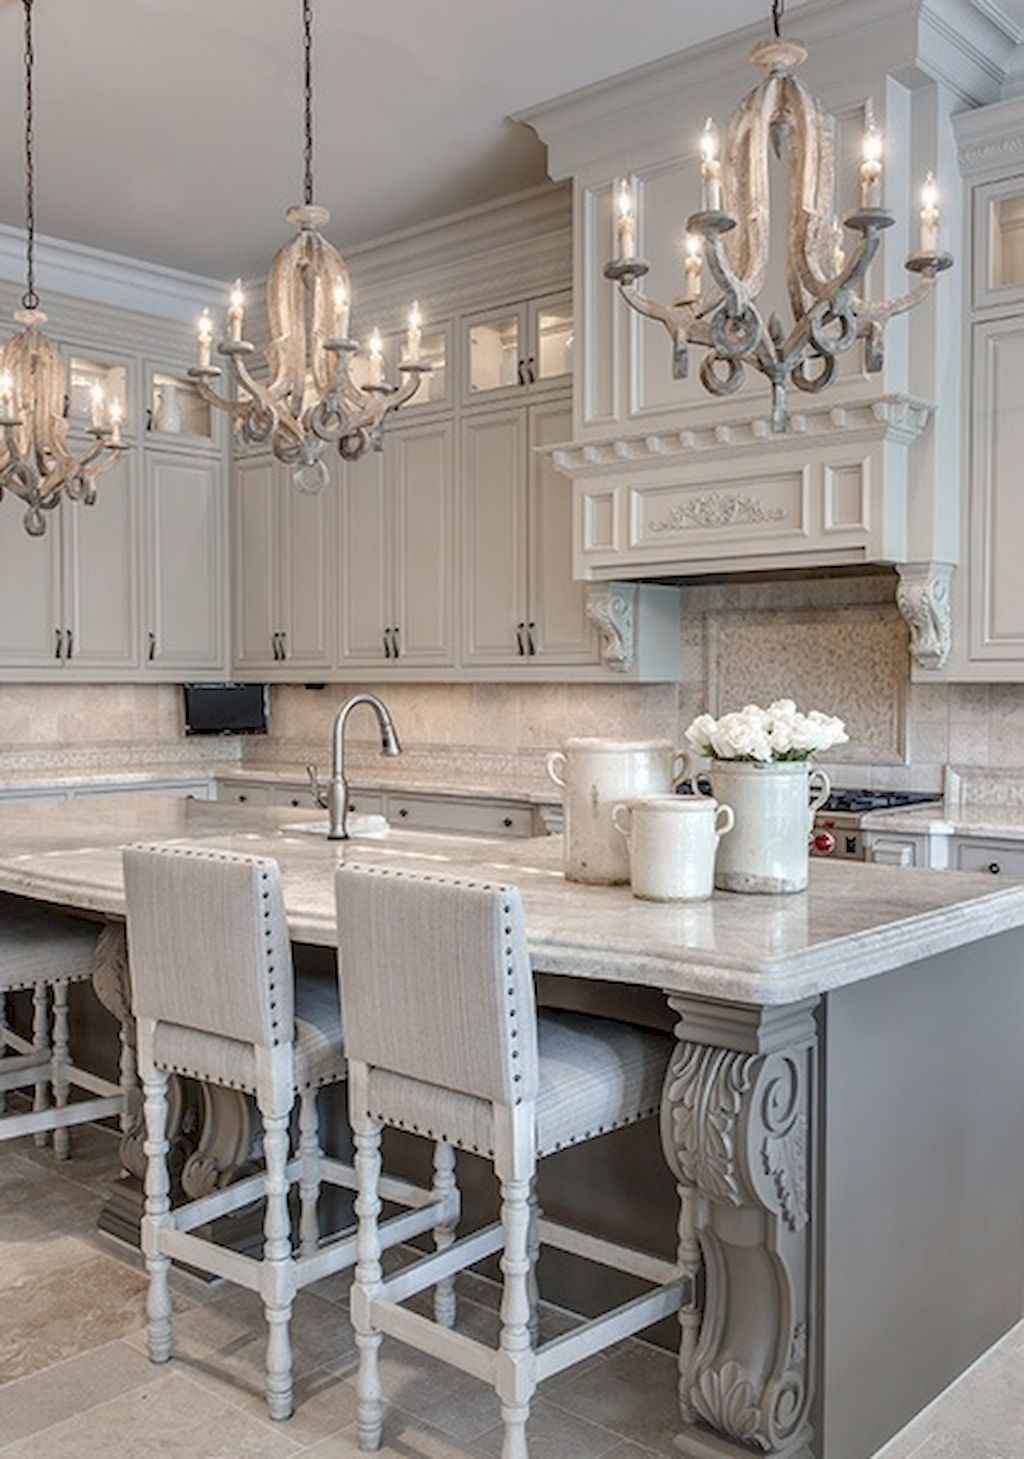 Incredible french country kitchen design ideas (4)